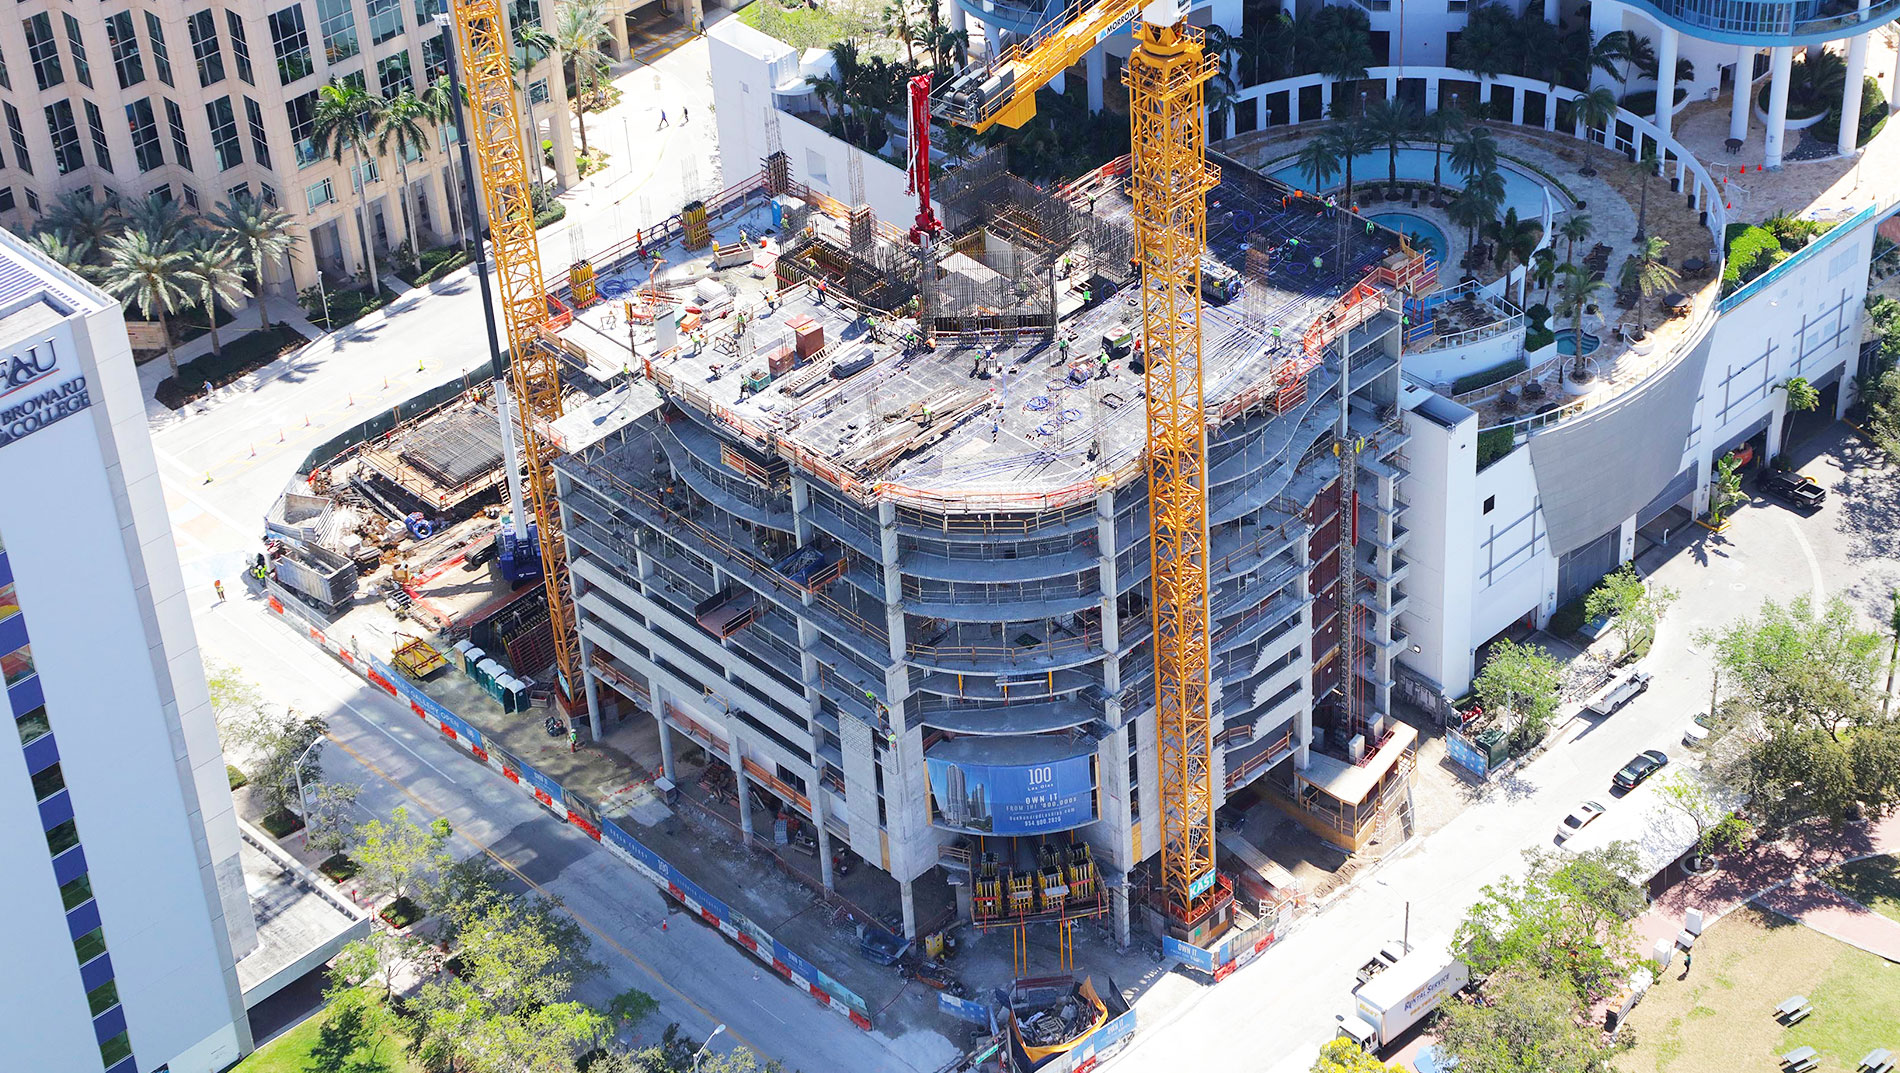 March Construction 2018 100 Las Olas Aerial Photo